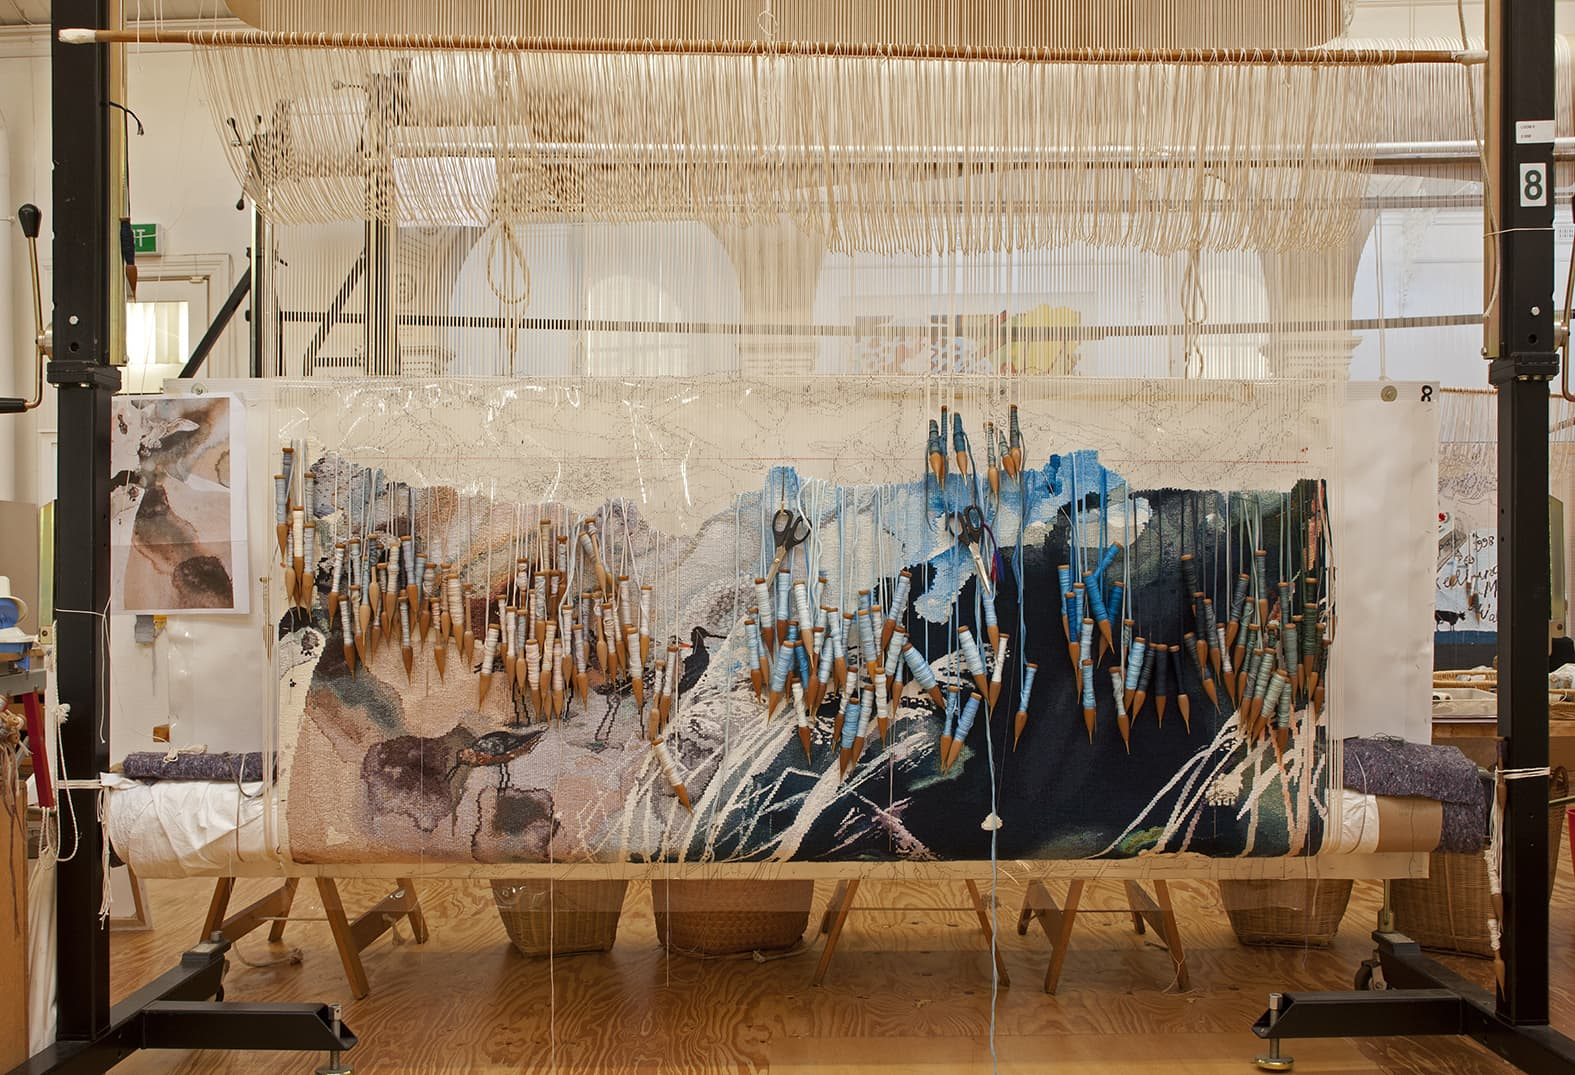 'Concerning the wading birds of the Warrnambool wetlands' 2012, designed by John Wolseley, woven by Chris Cochius, Pamela Joyce & Milena Paplinska, wool and cotton, 1.80 x 1.90m. Photograph: Viki Petherbridge.